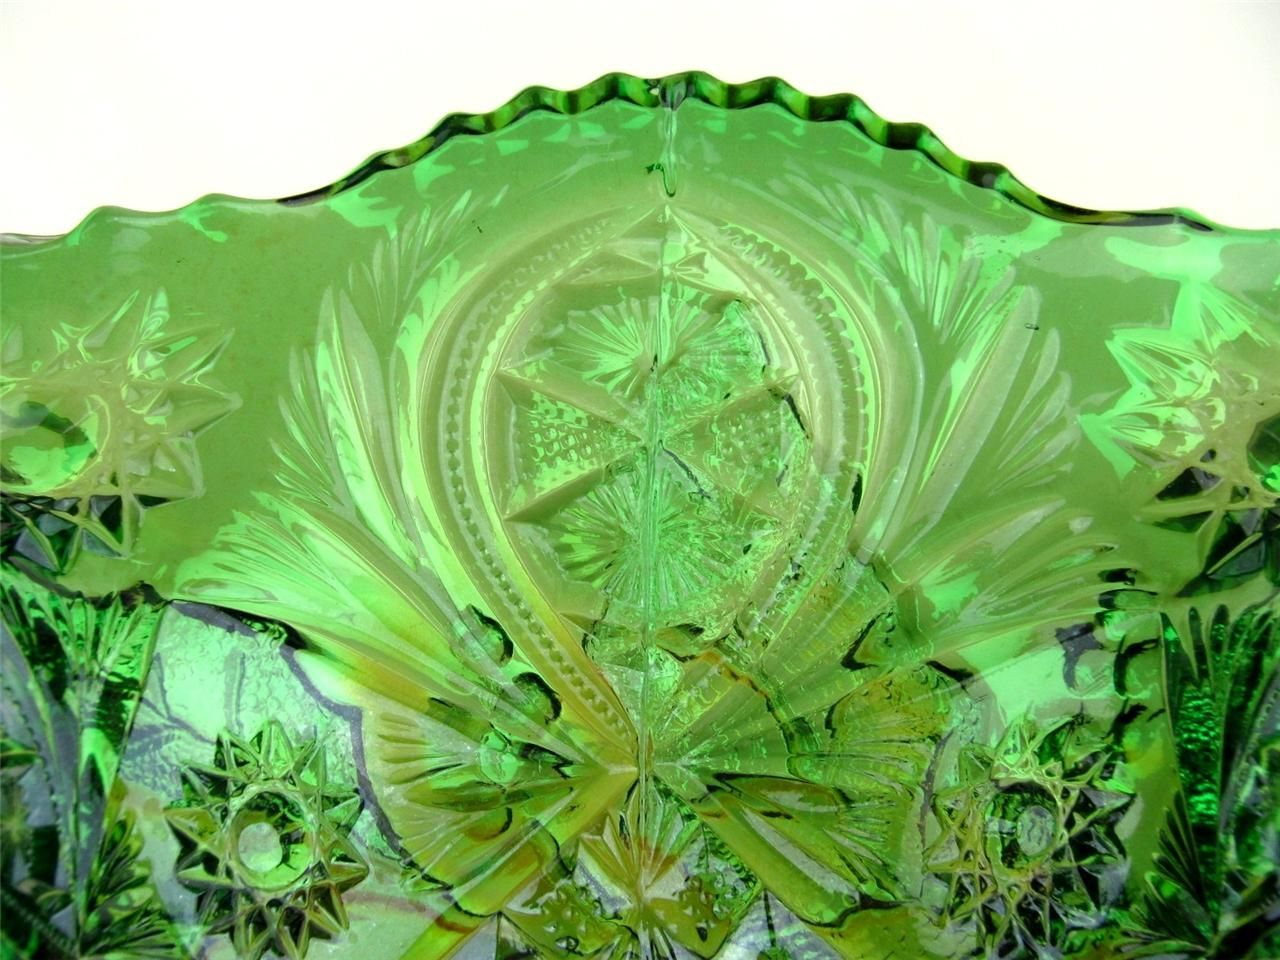 HOLLY WHIRL by MILLERSBURG ~ RADIUM GREEN CARNIVAL GLASS SIX RUFFLE 10